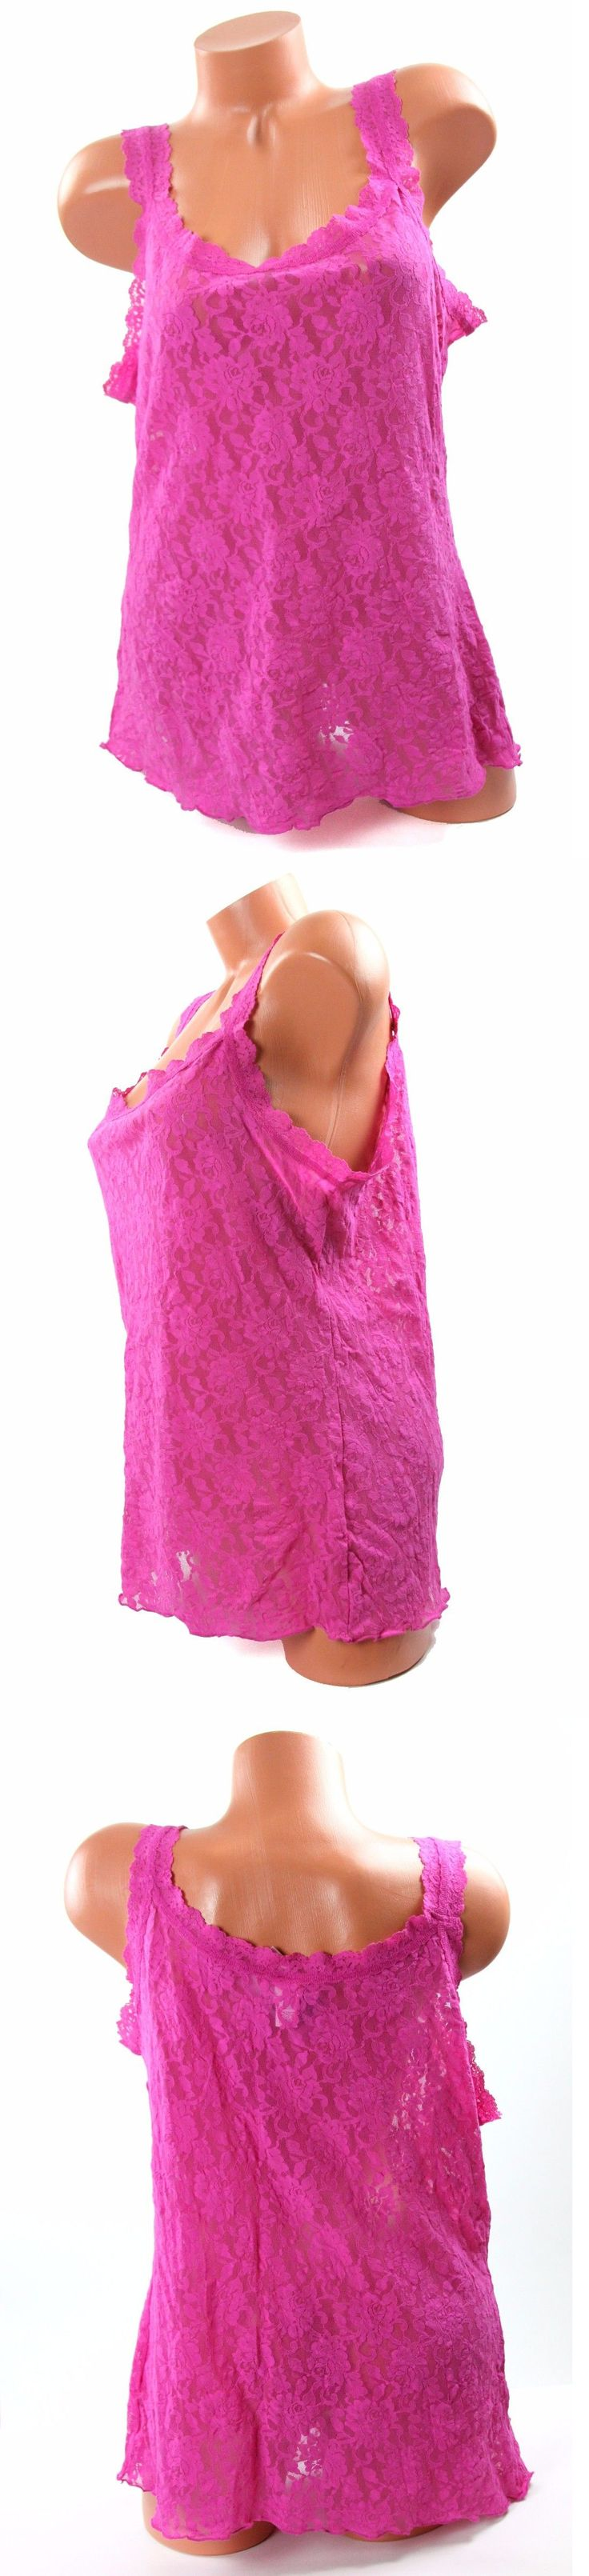 Camisoles and Camisole Sets 11521: Hanky Panky Hot Pink Plus Size Camisole 2X Nwt -> BUY IT NOW ONLY: $36.99 on eBay!